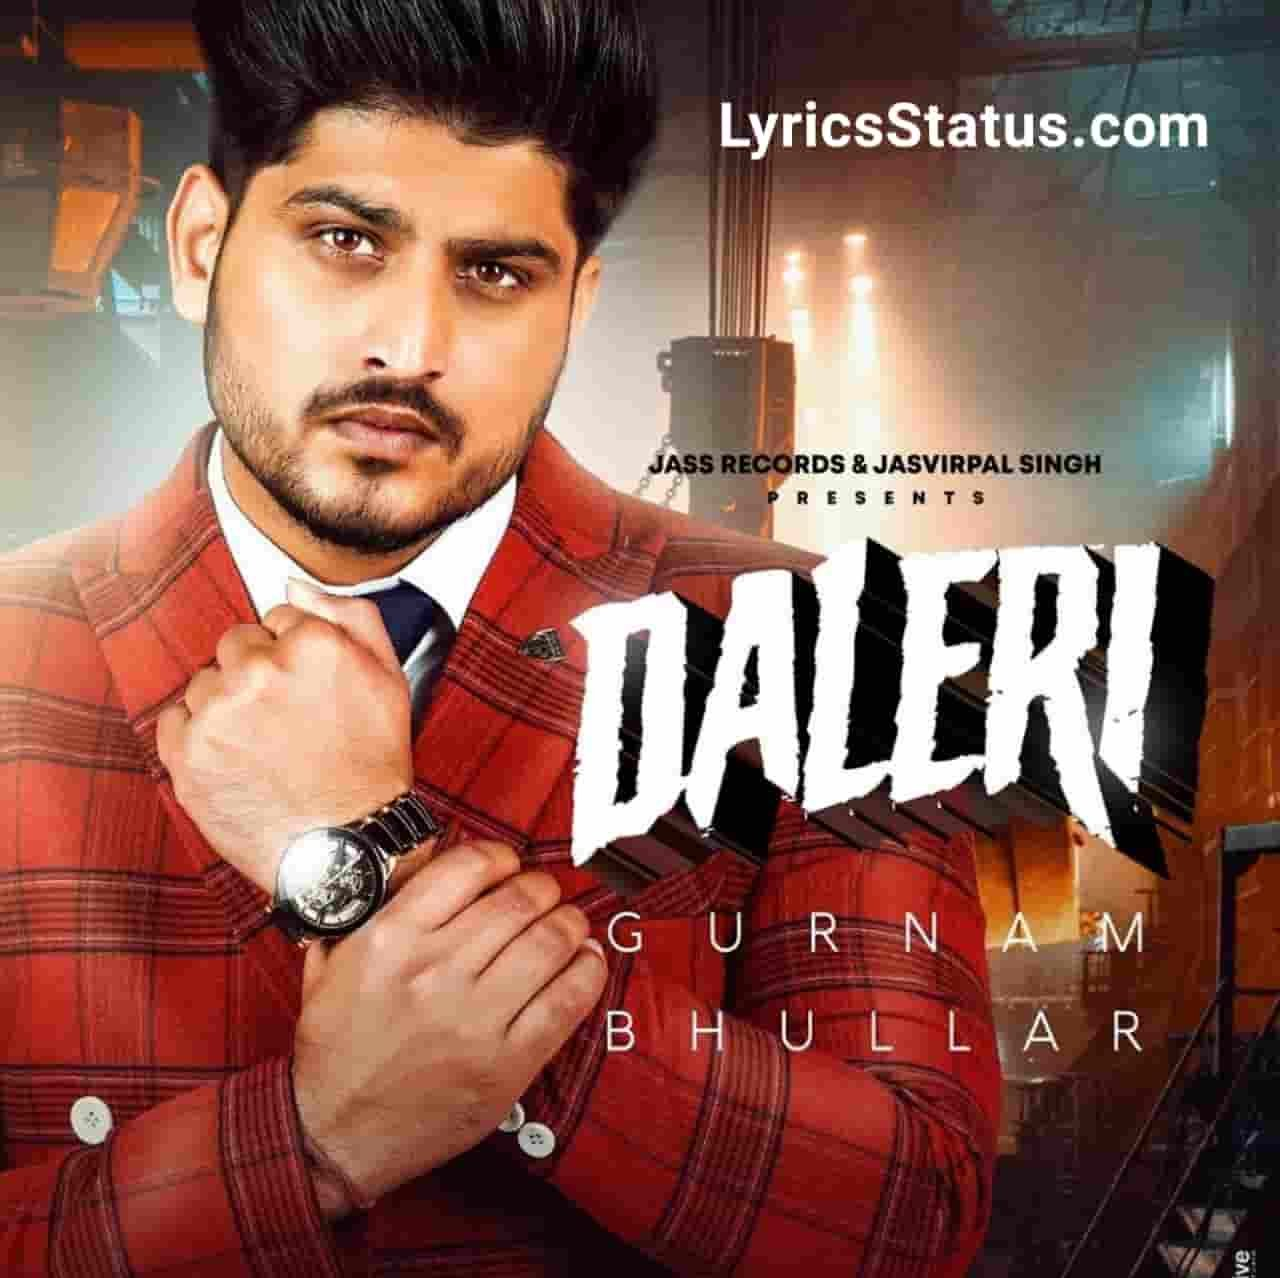 Gurnam Bhullar new song Daleri Lyrics Status Download Video punjabi song Shonk naal rakhe hathyar jatta ne Jusseyan ch tunn ke Daleri rakhi aa